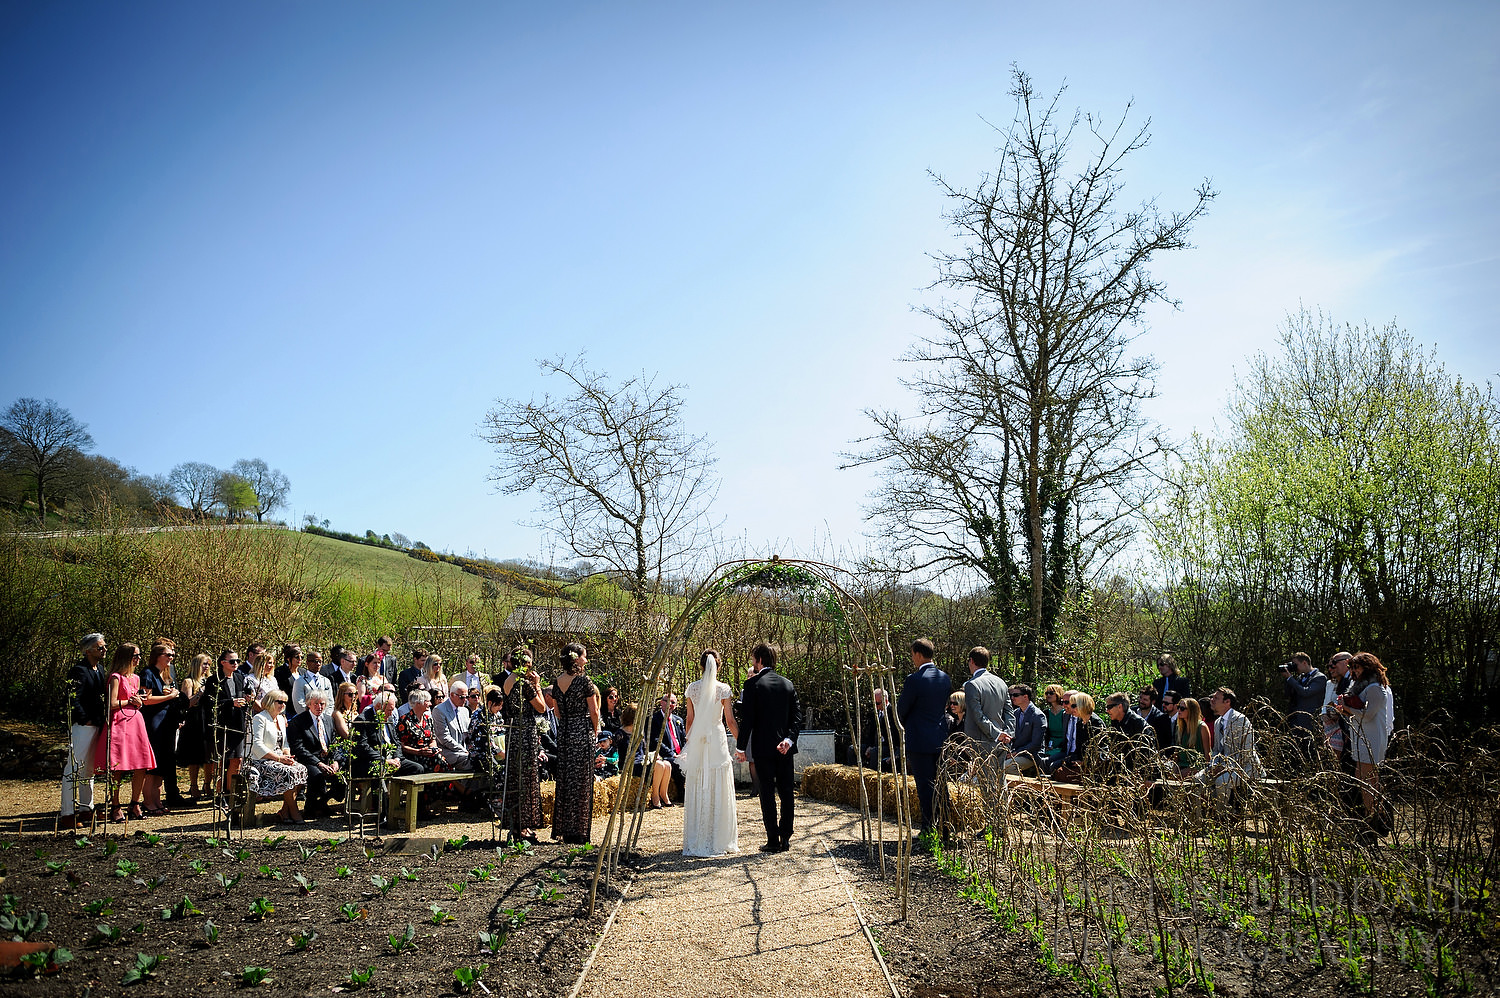 Outdoor wedding ceremony at River Cottage wedding